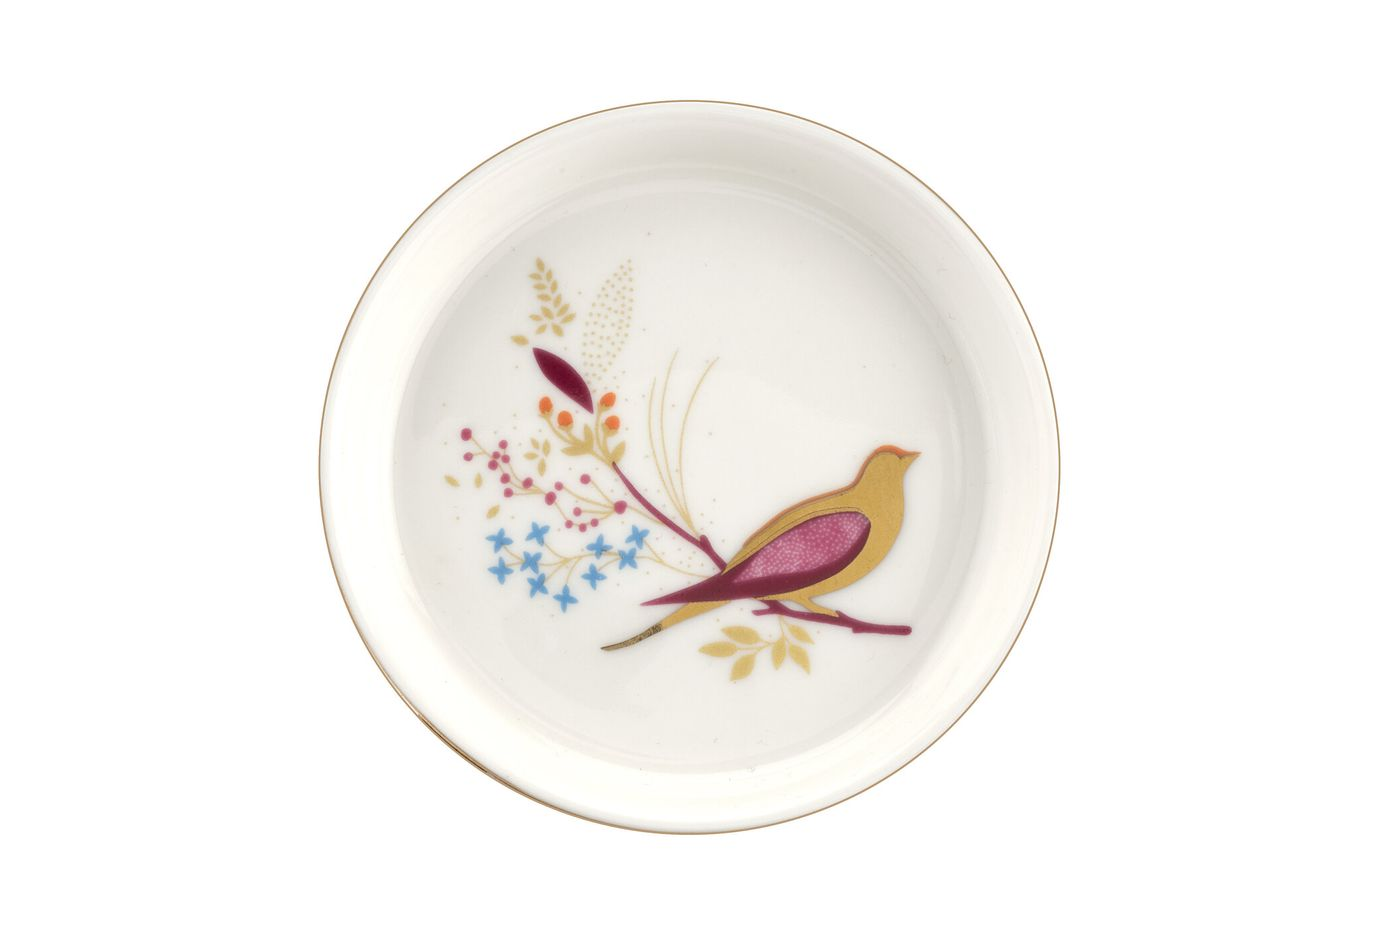 Sara Miller London for Portmeirion Chelsea Collection Small Dish Pink 7.5cm thumb 2